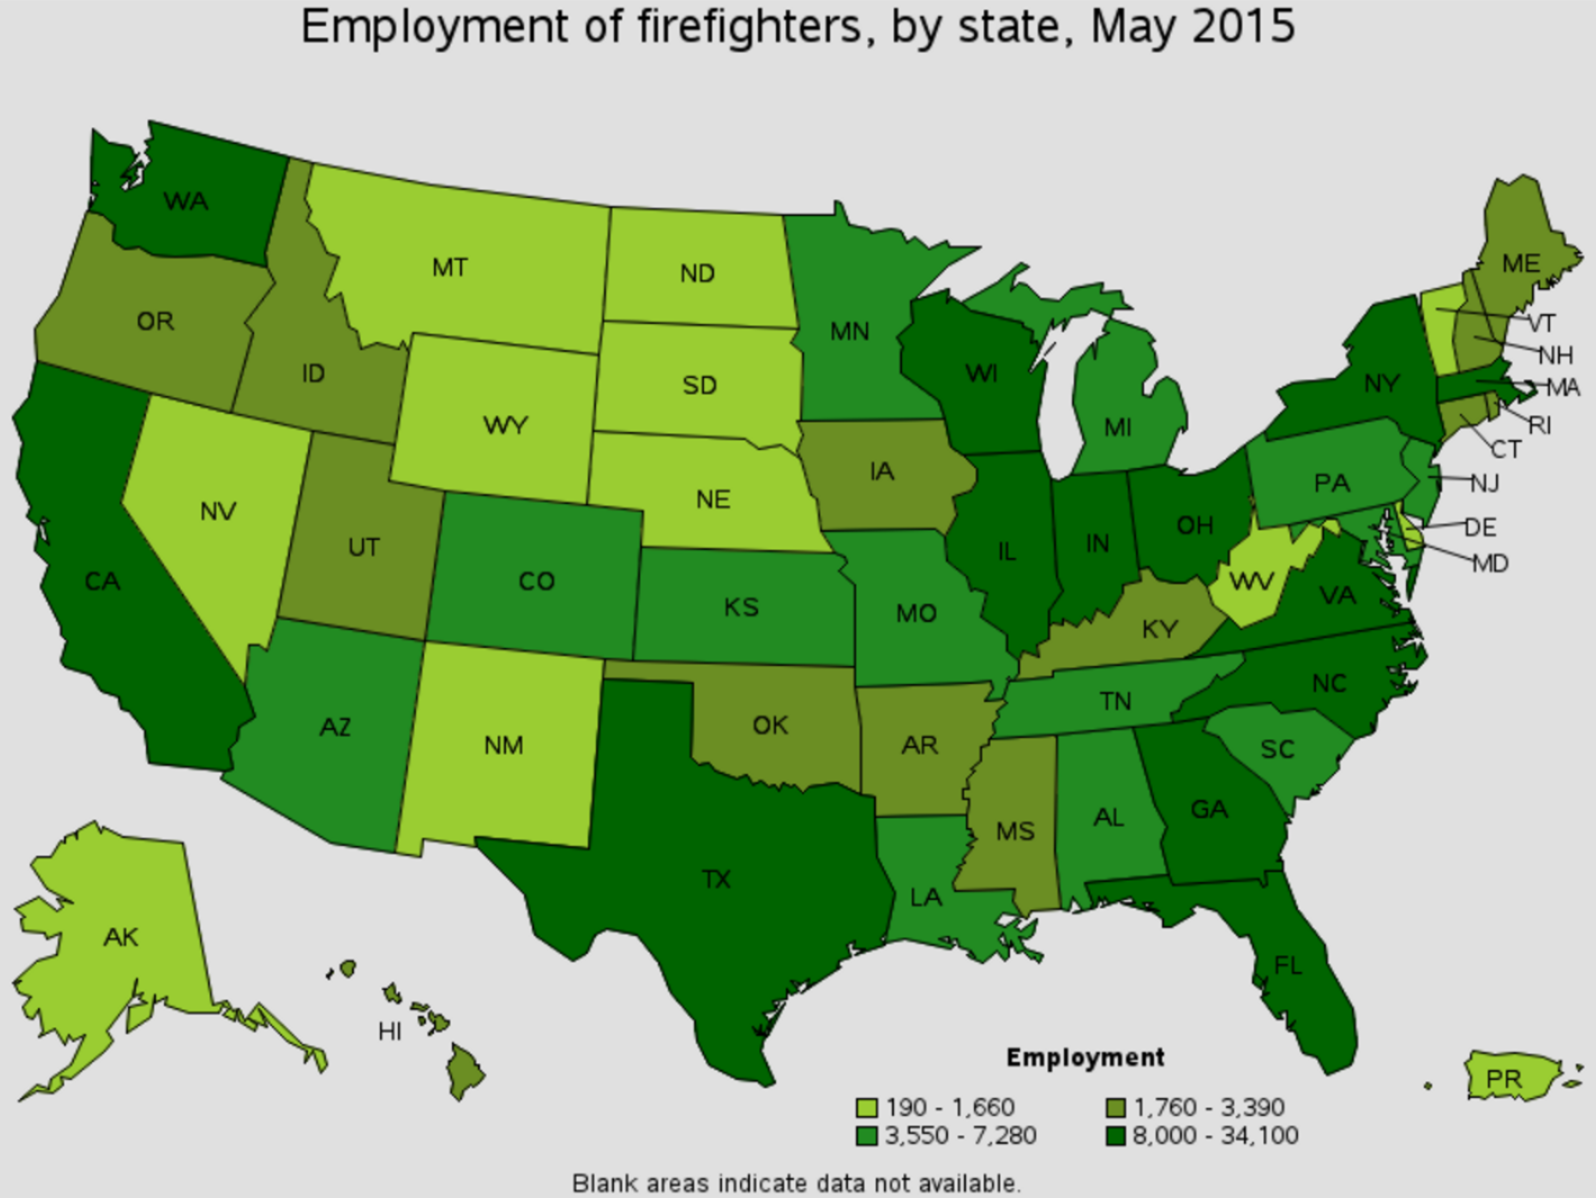 firefighter job outlook by state Pueblo Colorado